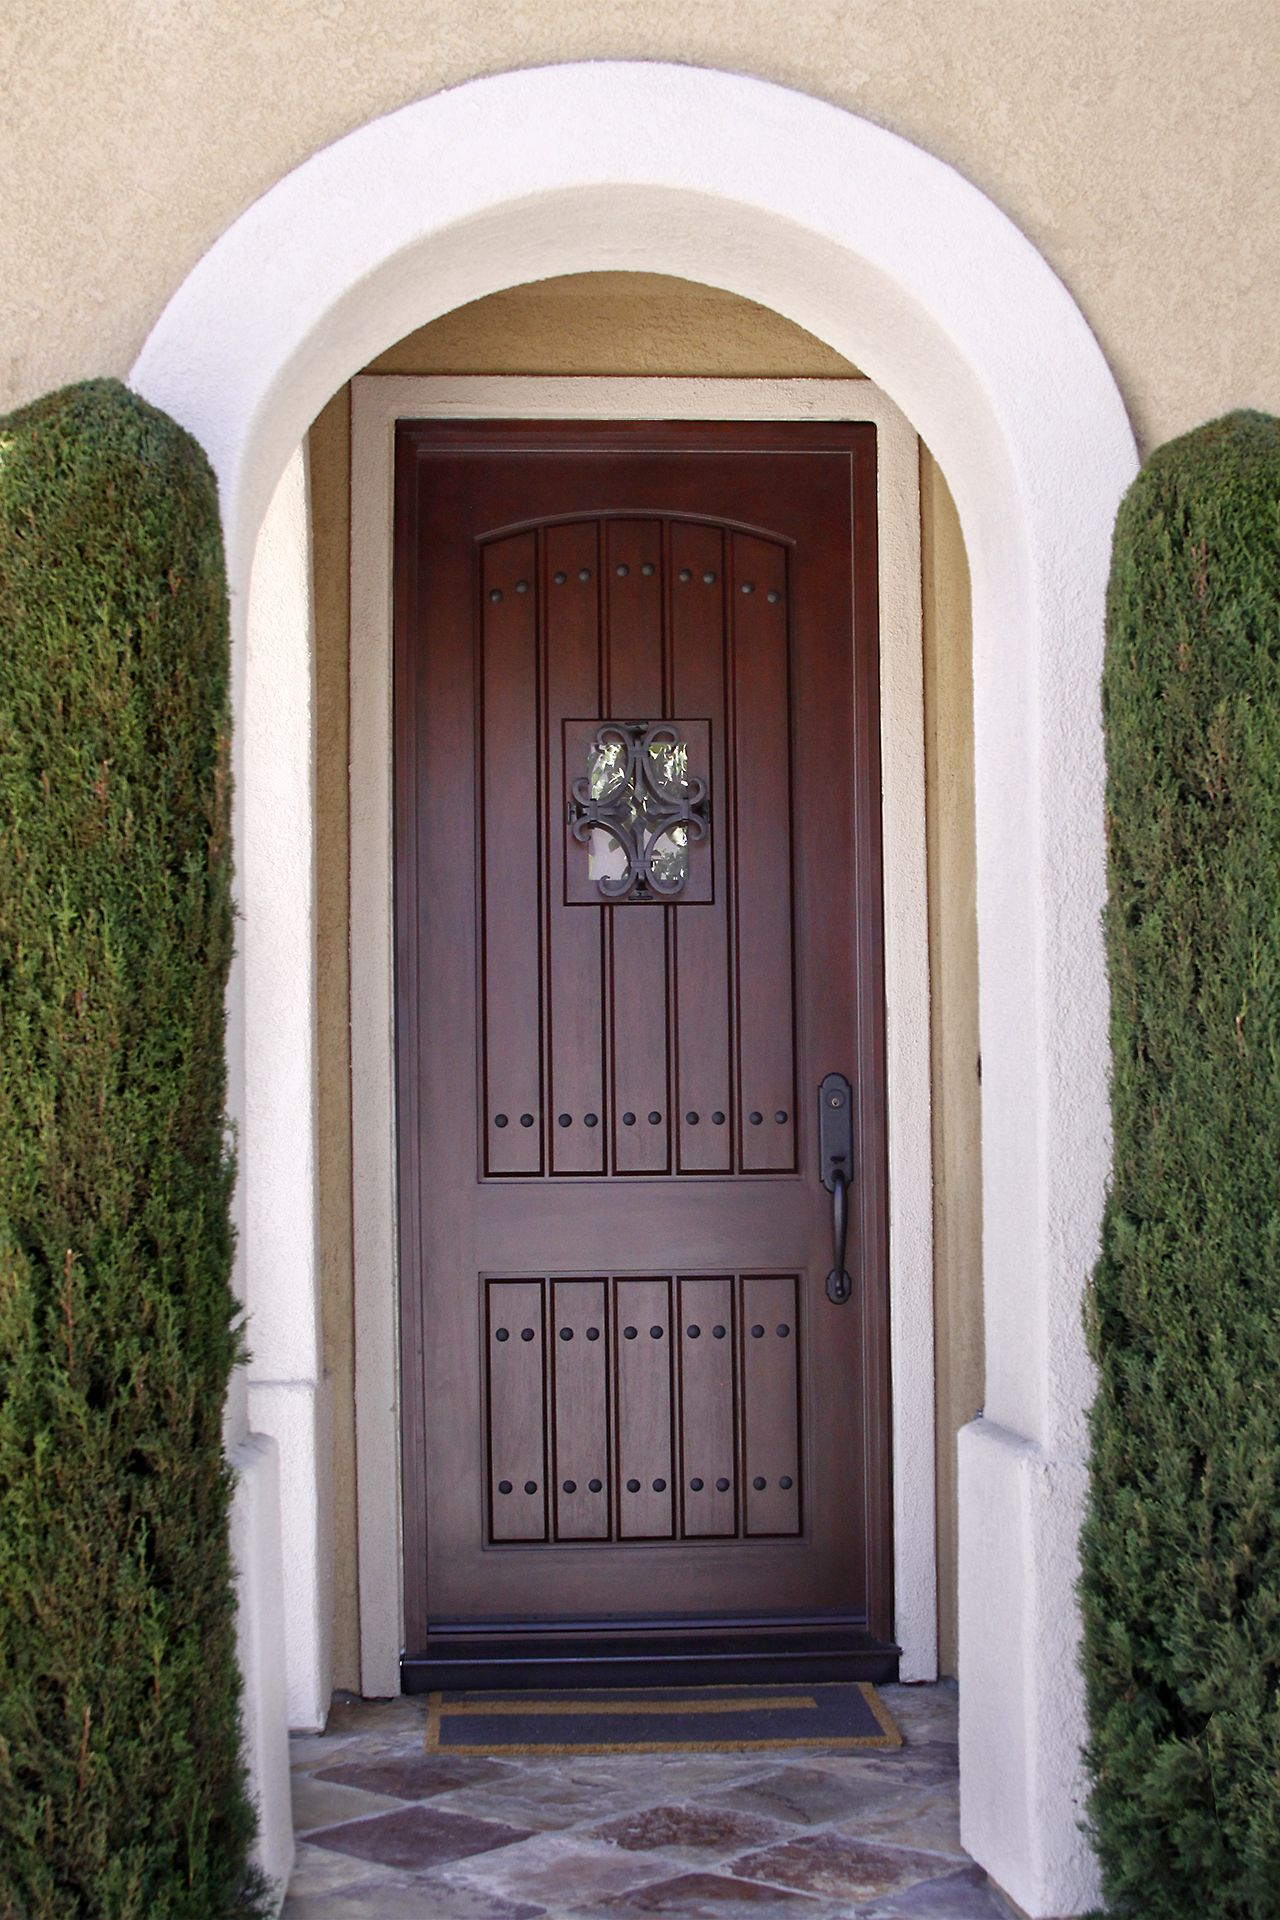 Rustic 8 Foot Tall Entry System With Speak Easy Exterior Doors Entry Doors Dutch Doors Exterior